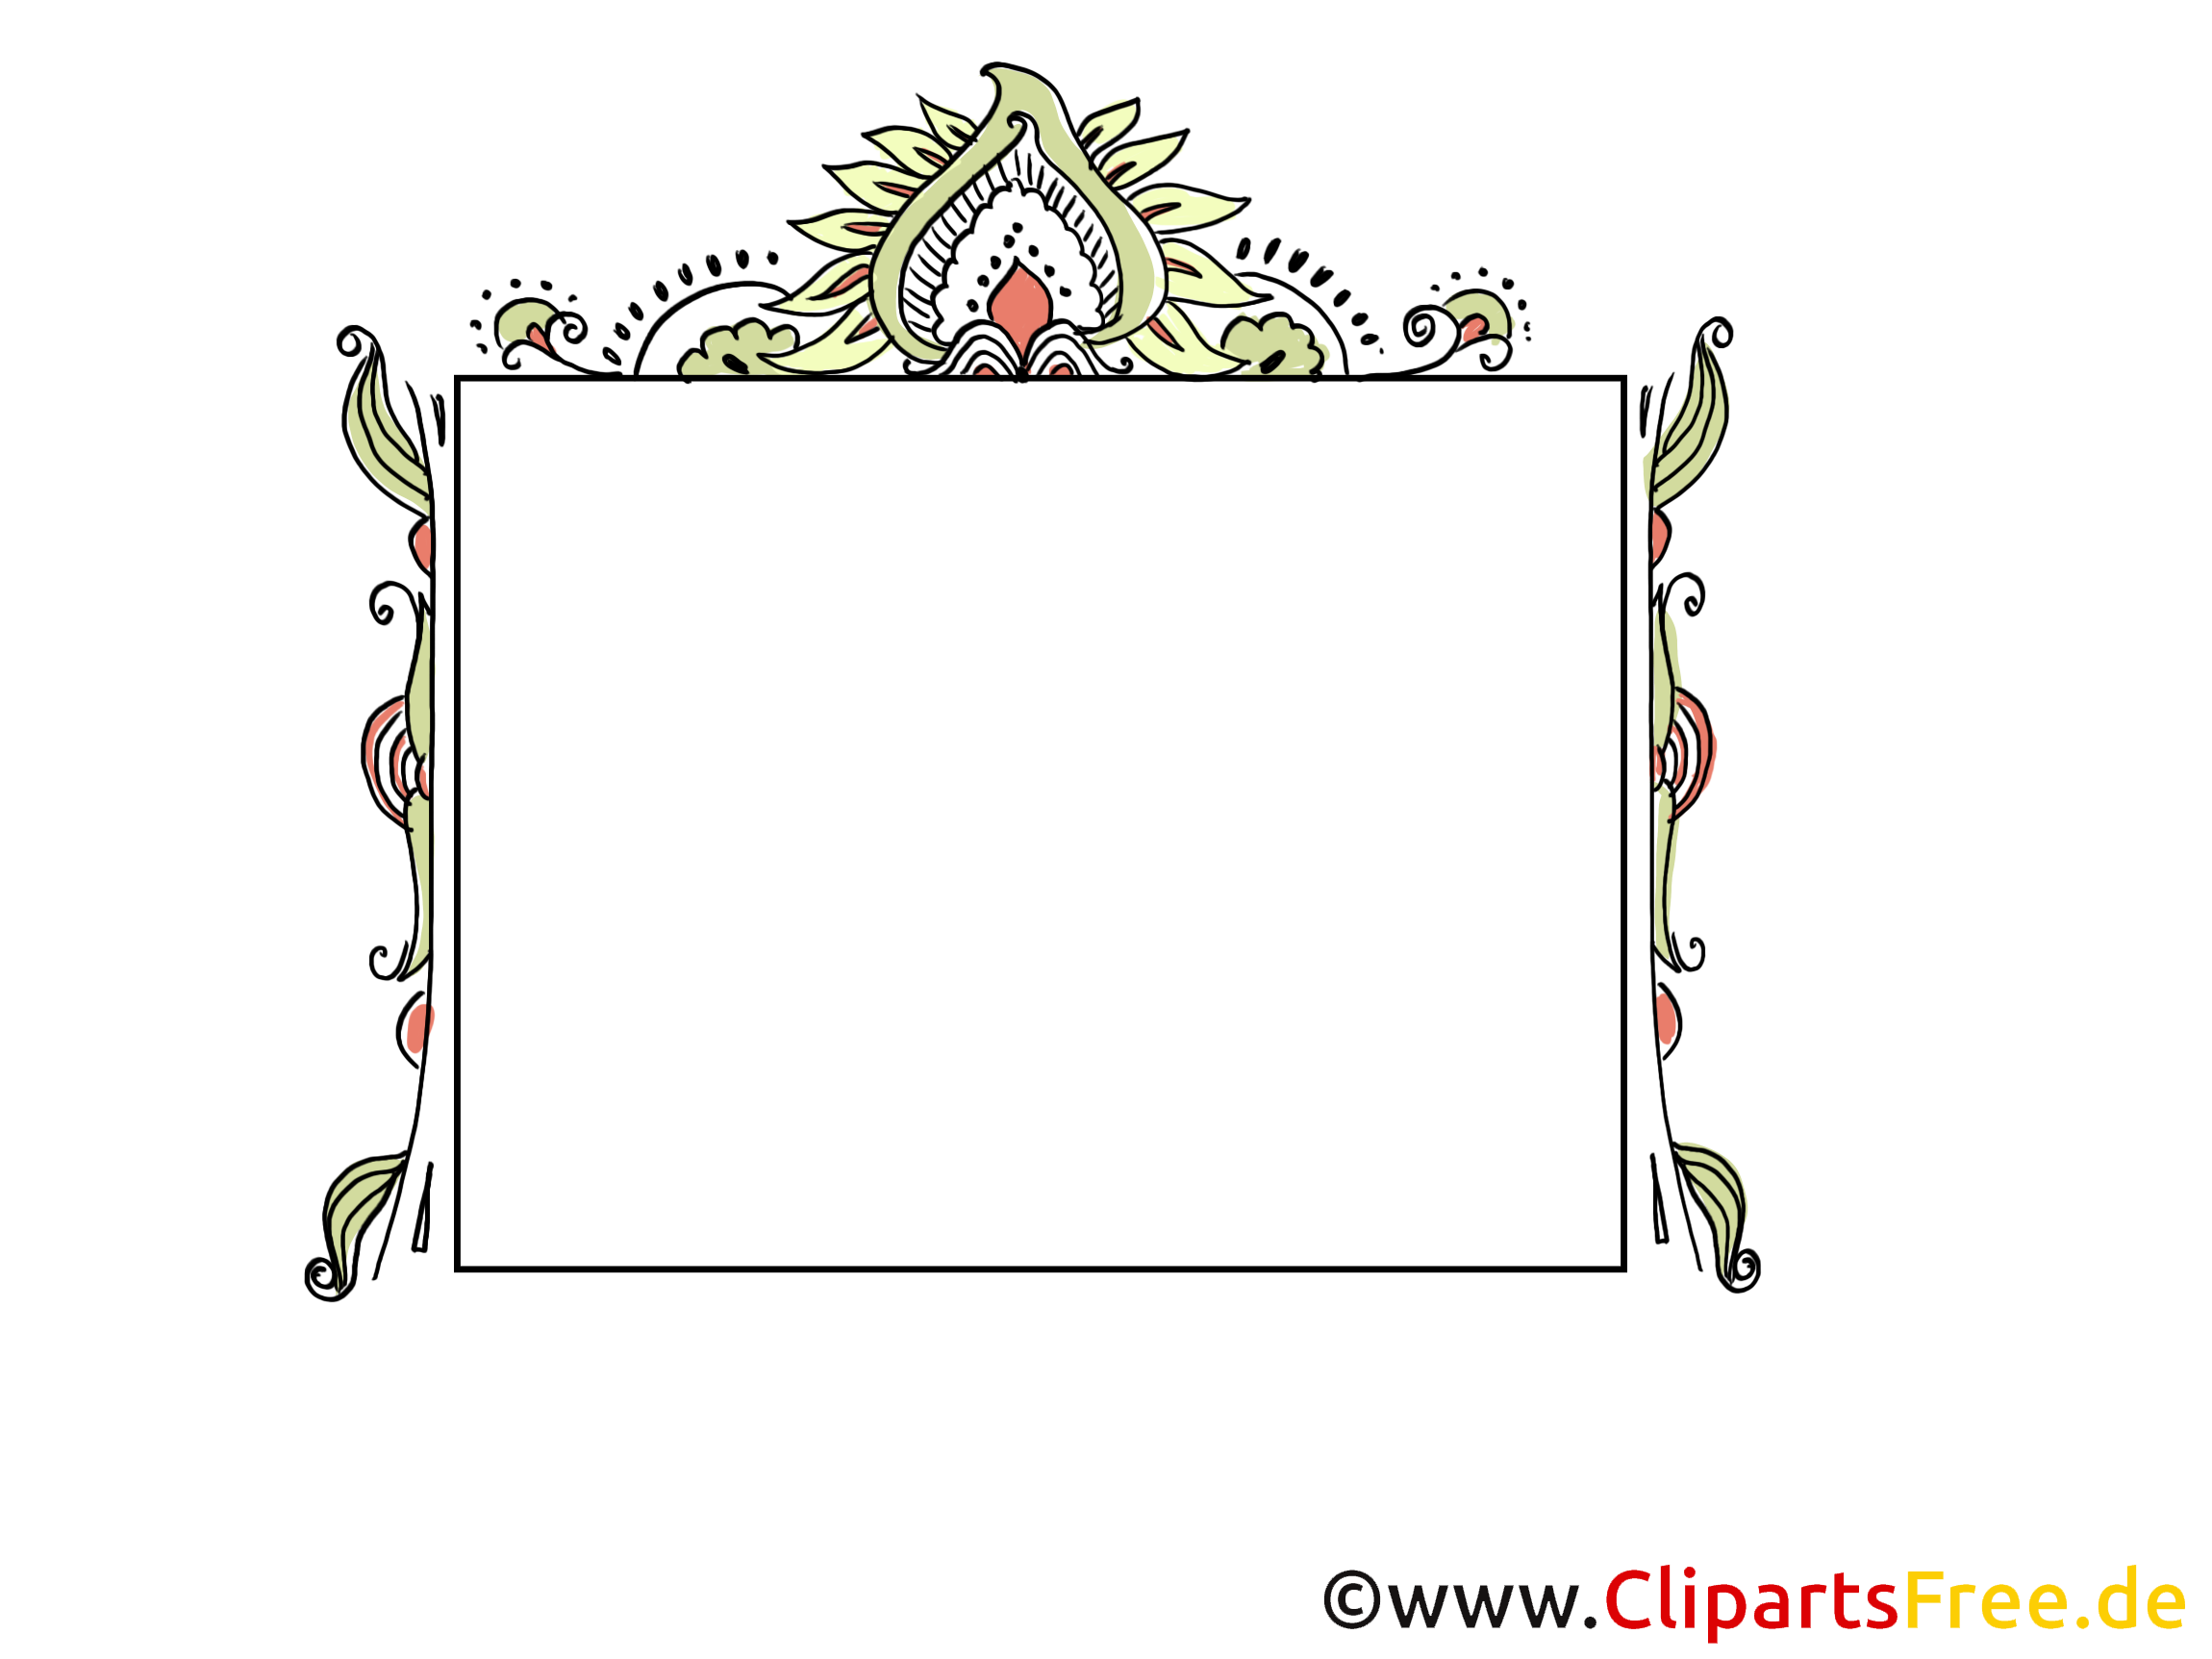 ornamente vorlagen kostenlos png transparent ornamente vorlagen kostenlos png images pluspng. Black Bedroom Furniture Sets. Home Design Ideas